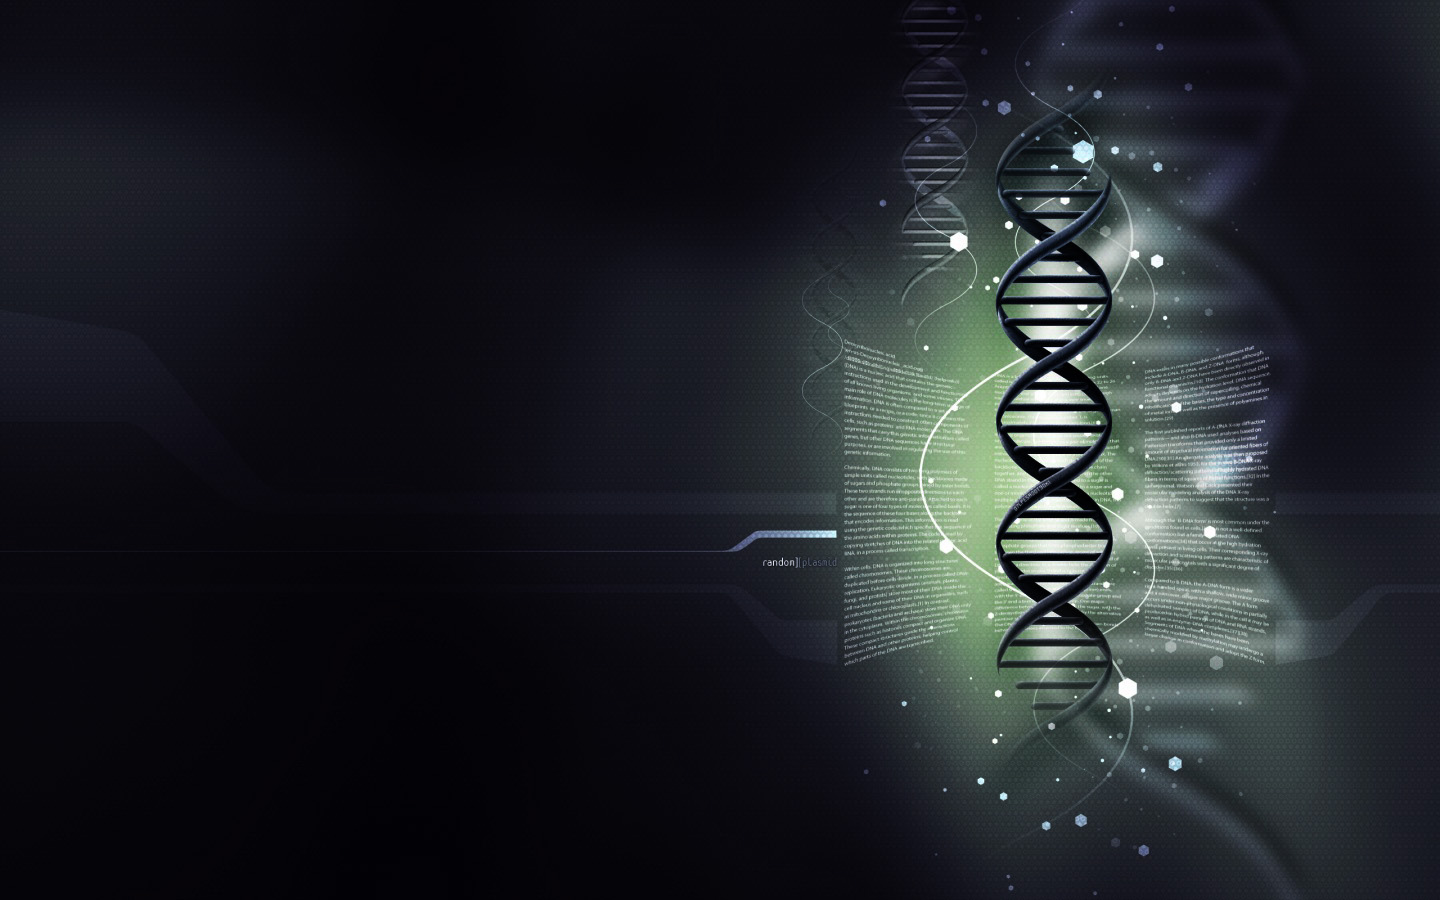 Hd Dna Wallpaper Wallpapersafari